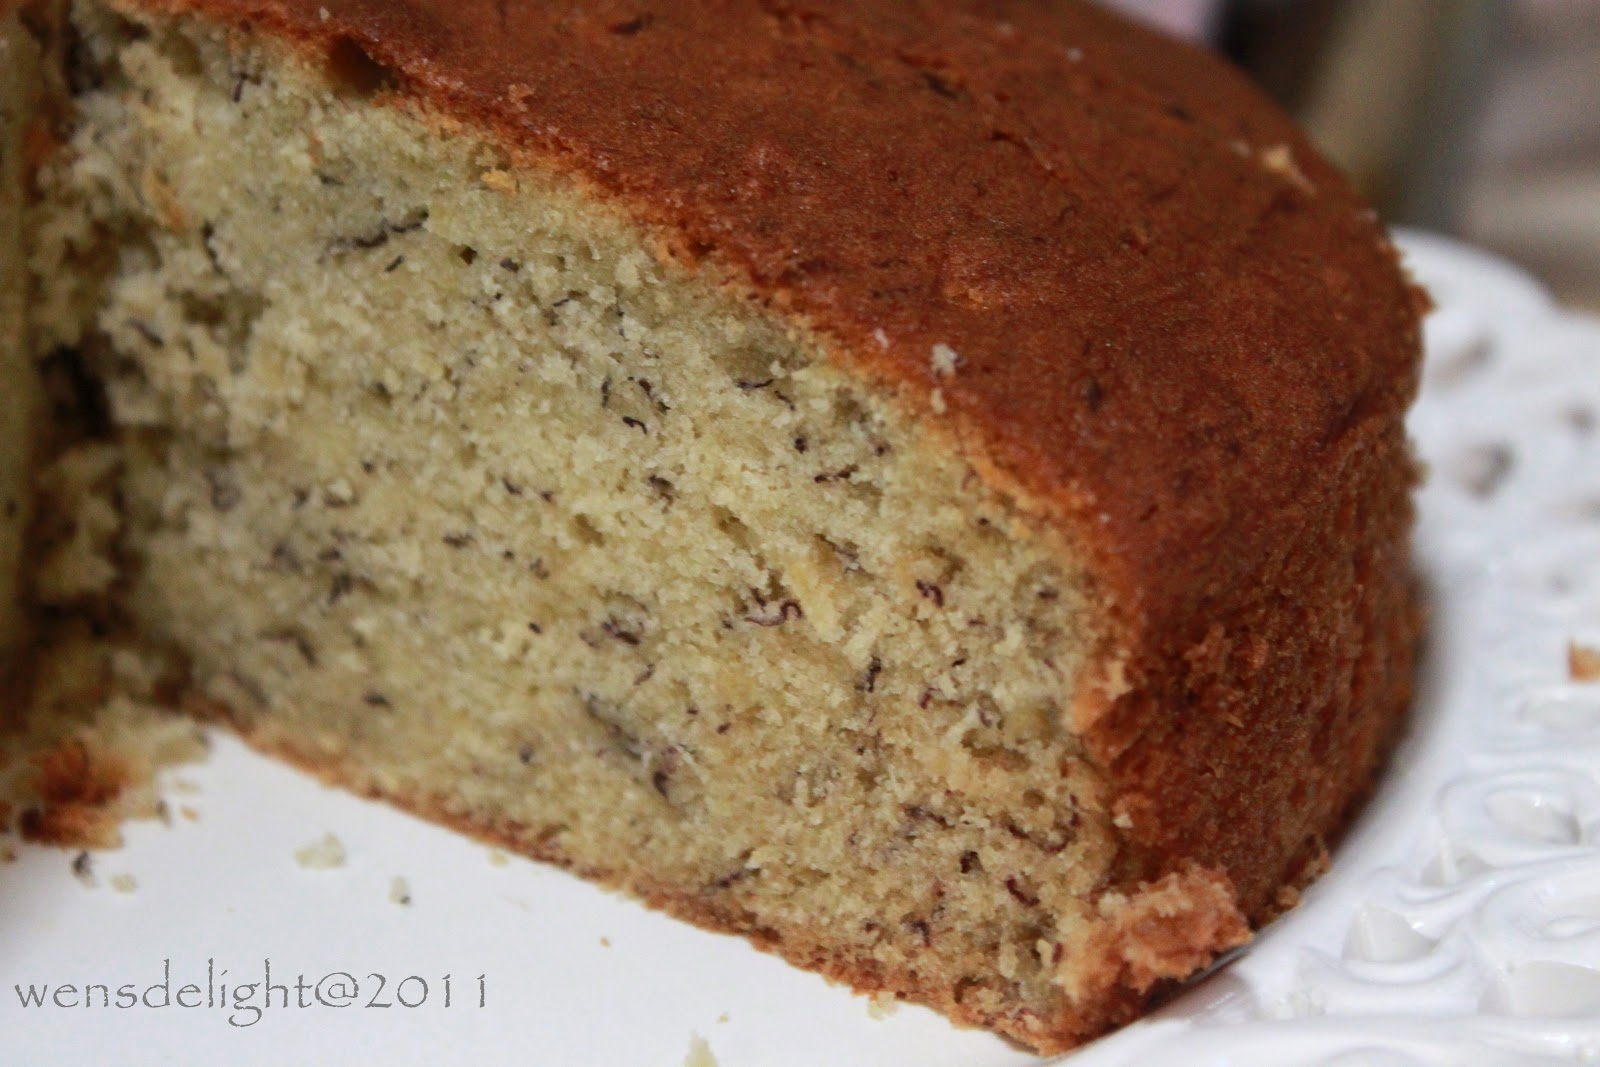 Wen's Delight: Yochana's Banana Cake